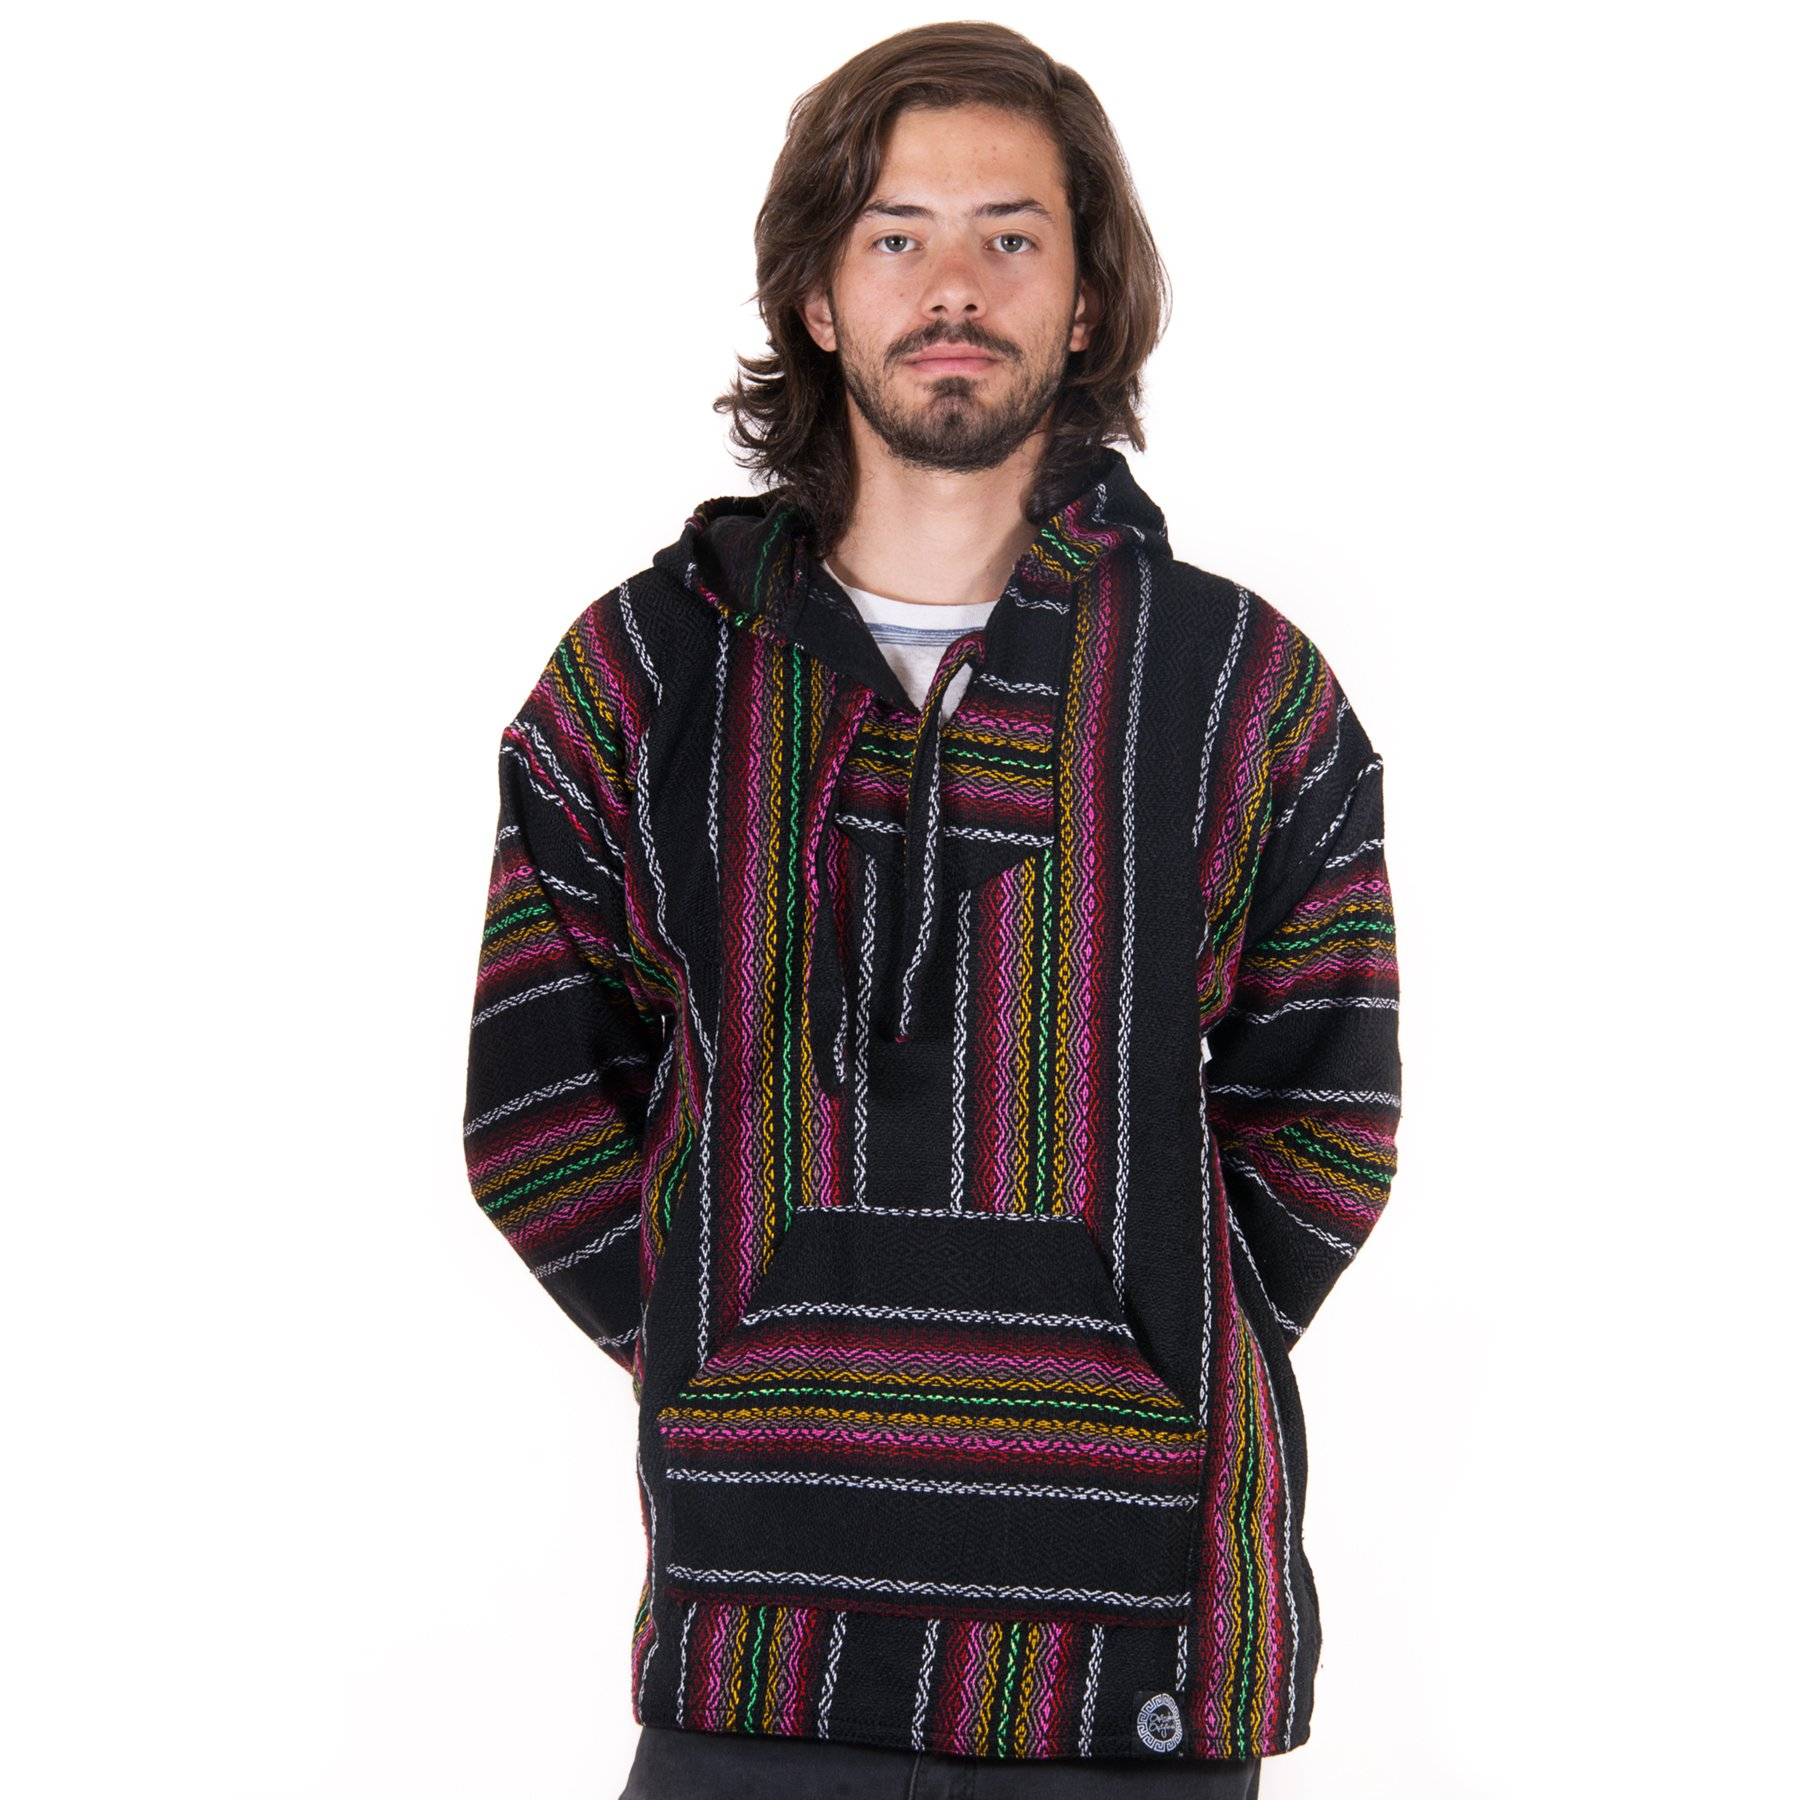 Orizaba Original Drug Rug - Black Pink Red Yellow Green Diamond - Manasquan 2XL